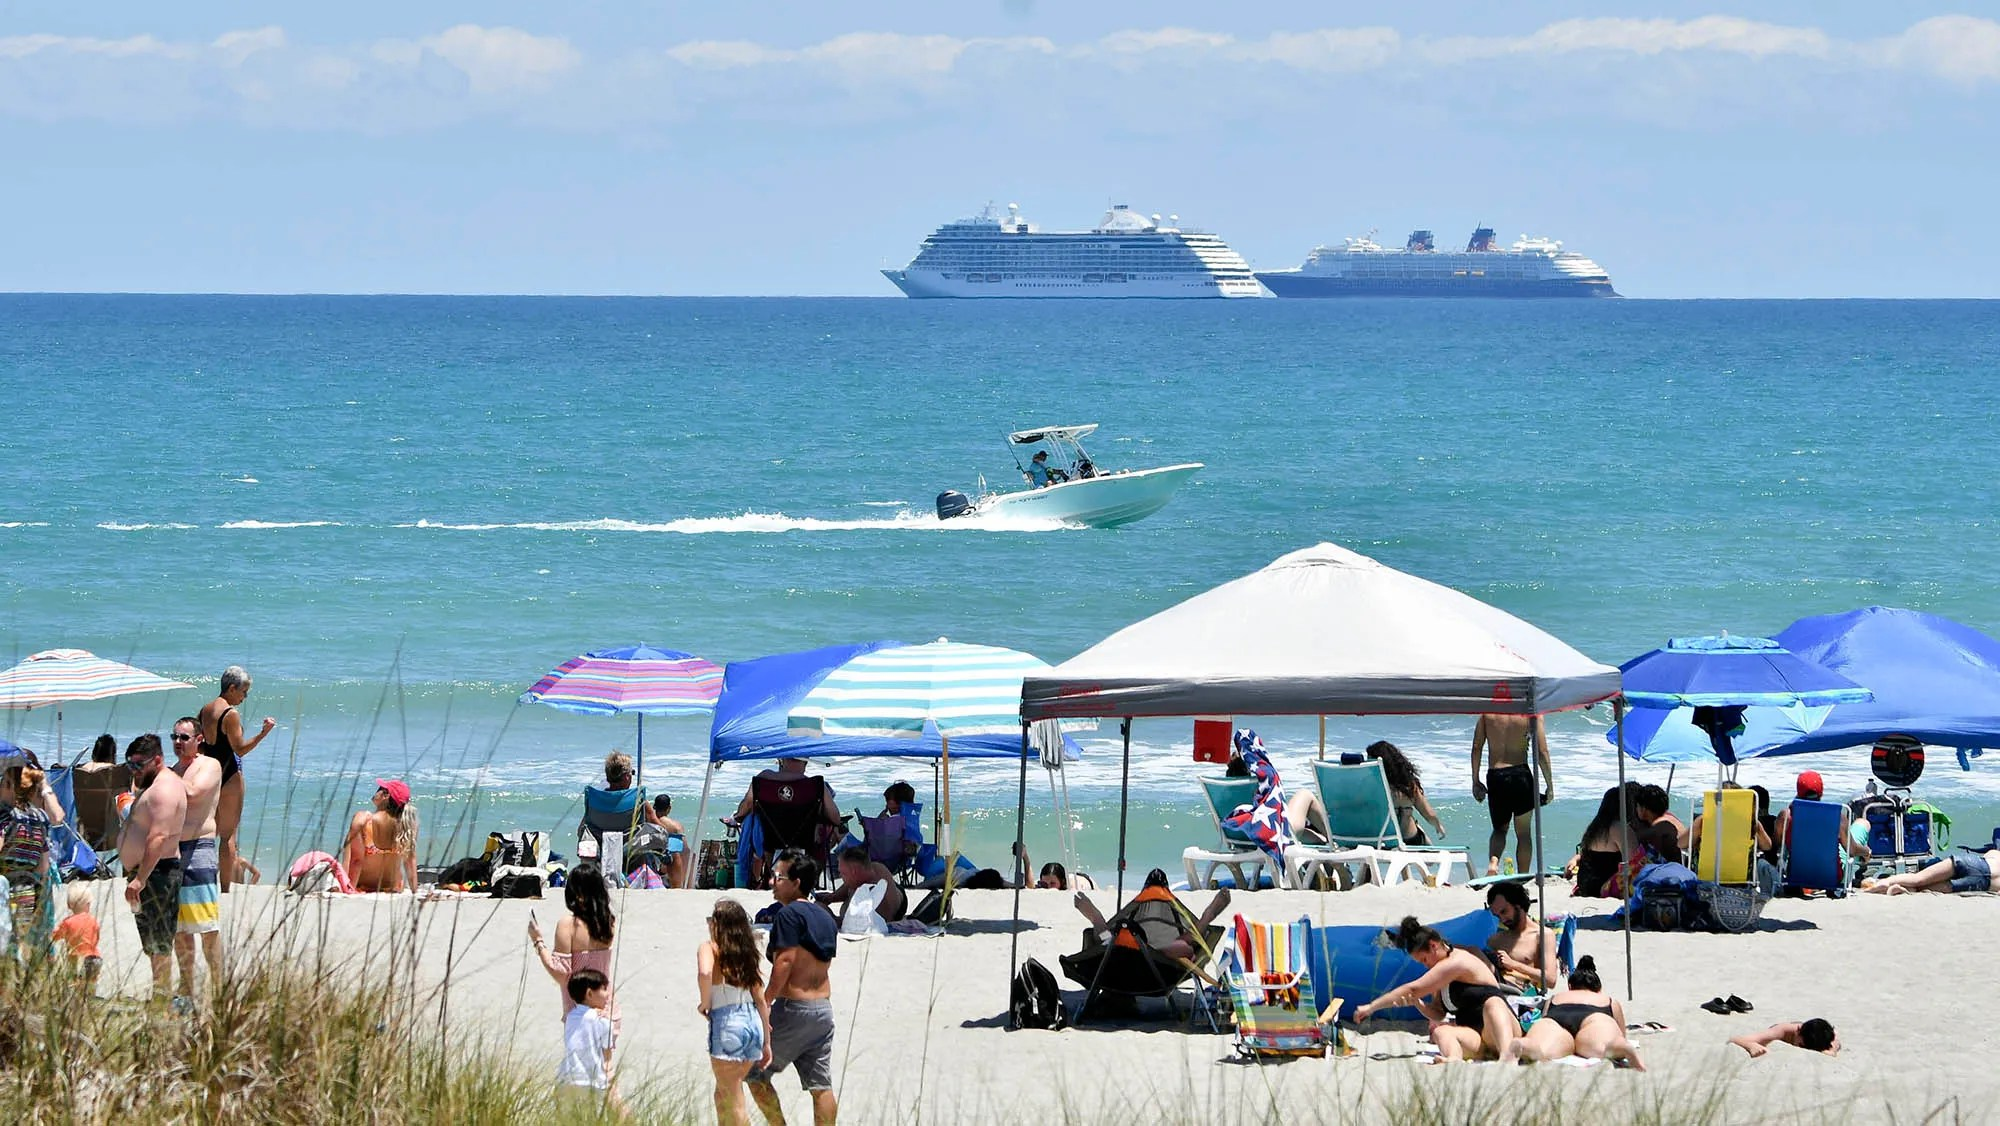 Summer Vacation Amid Coronavirus Will Travel Be A Bust Or Surprise